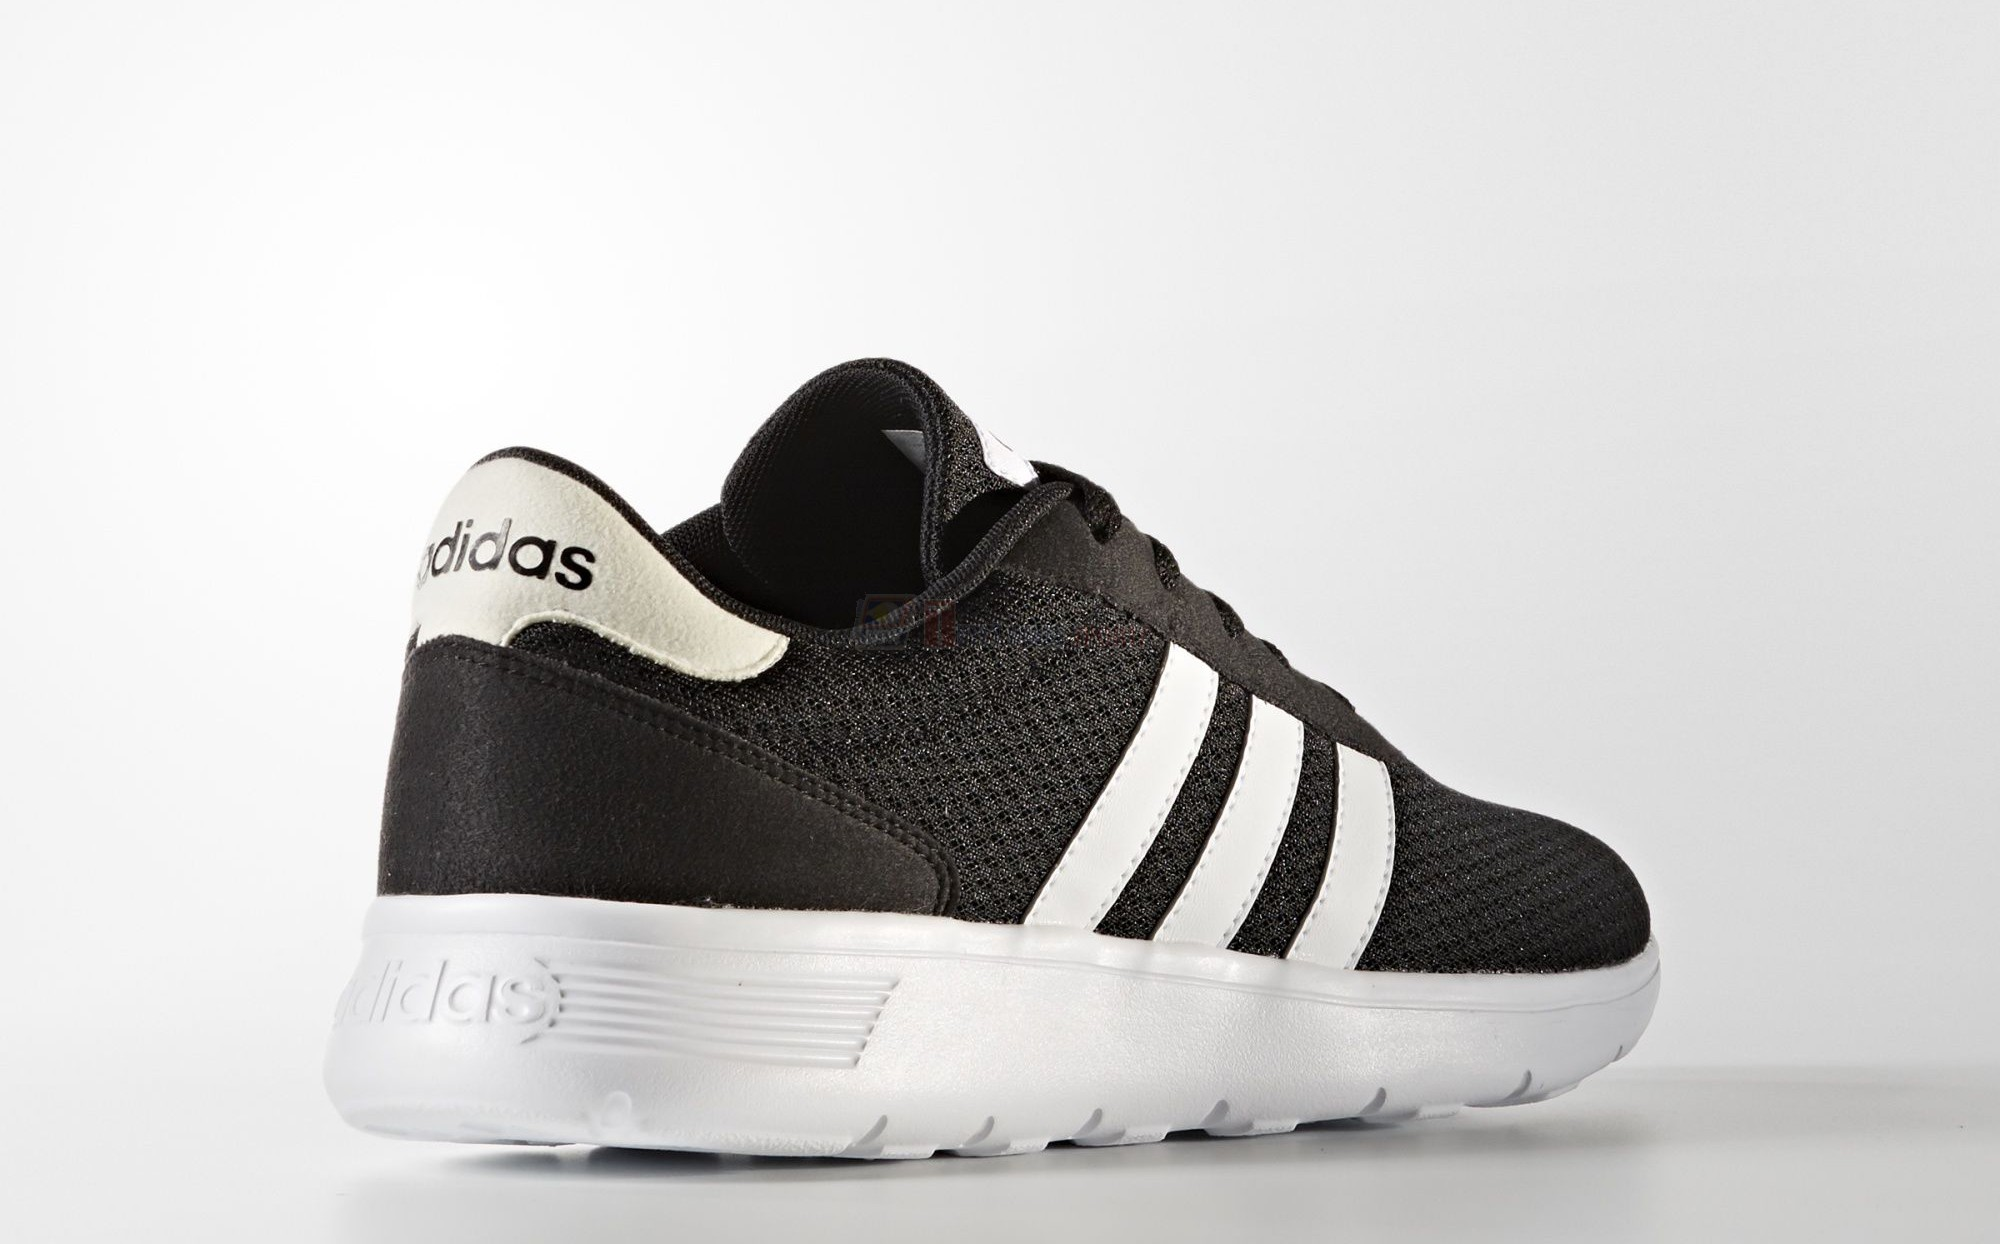 official photos 91573 6f5ef ... closeout giày th thao nam adidas neo lite racer bb9774 34ae8 4df65